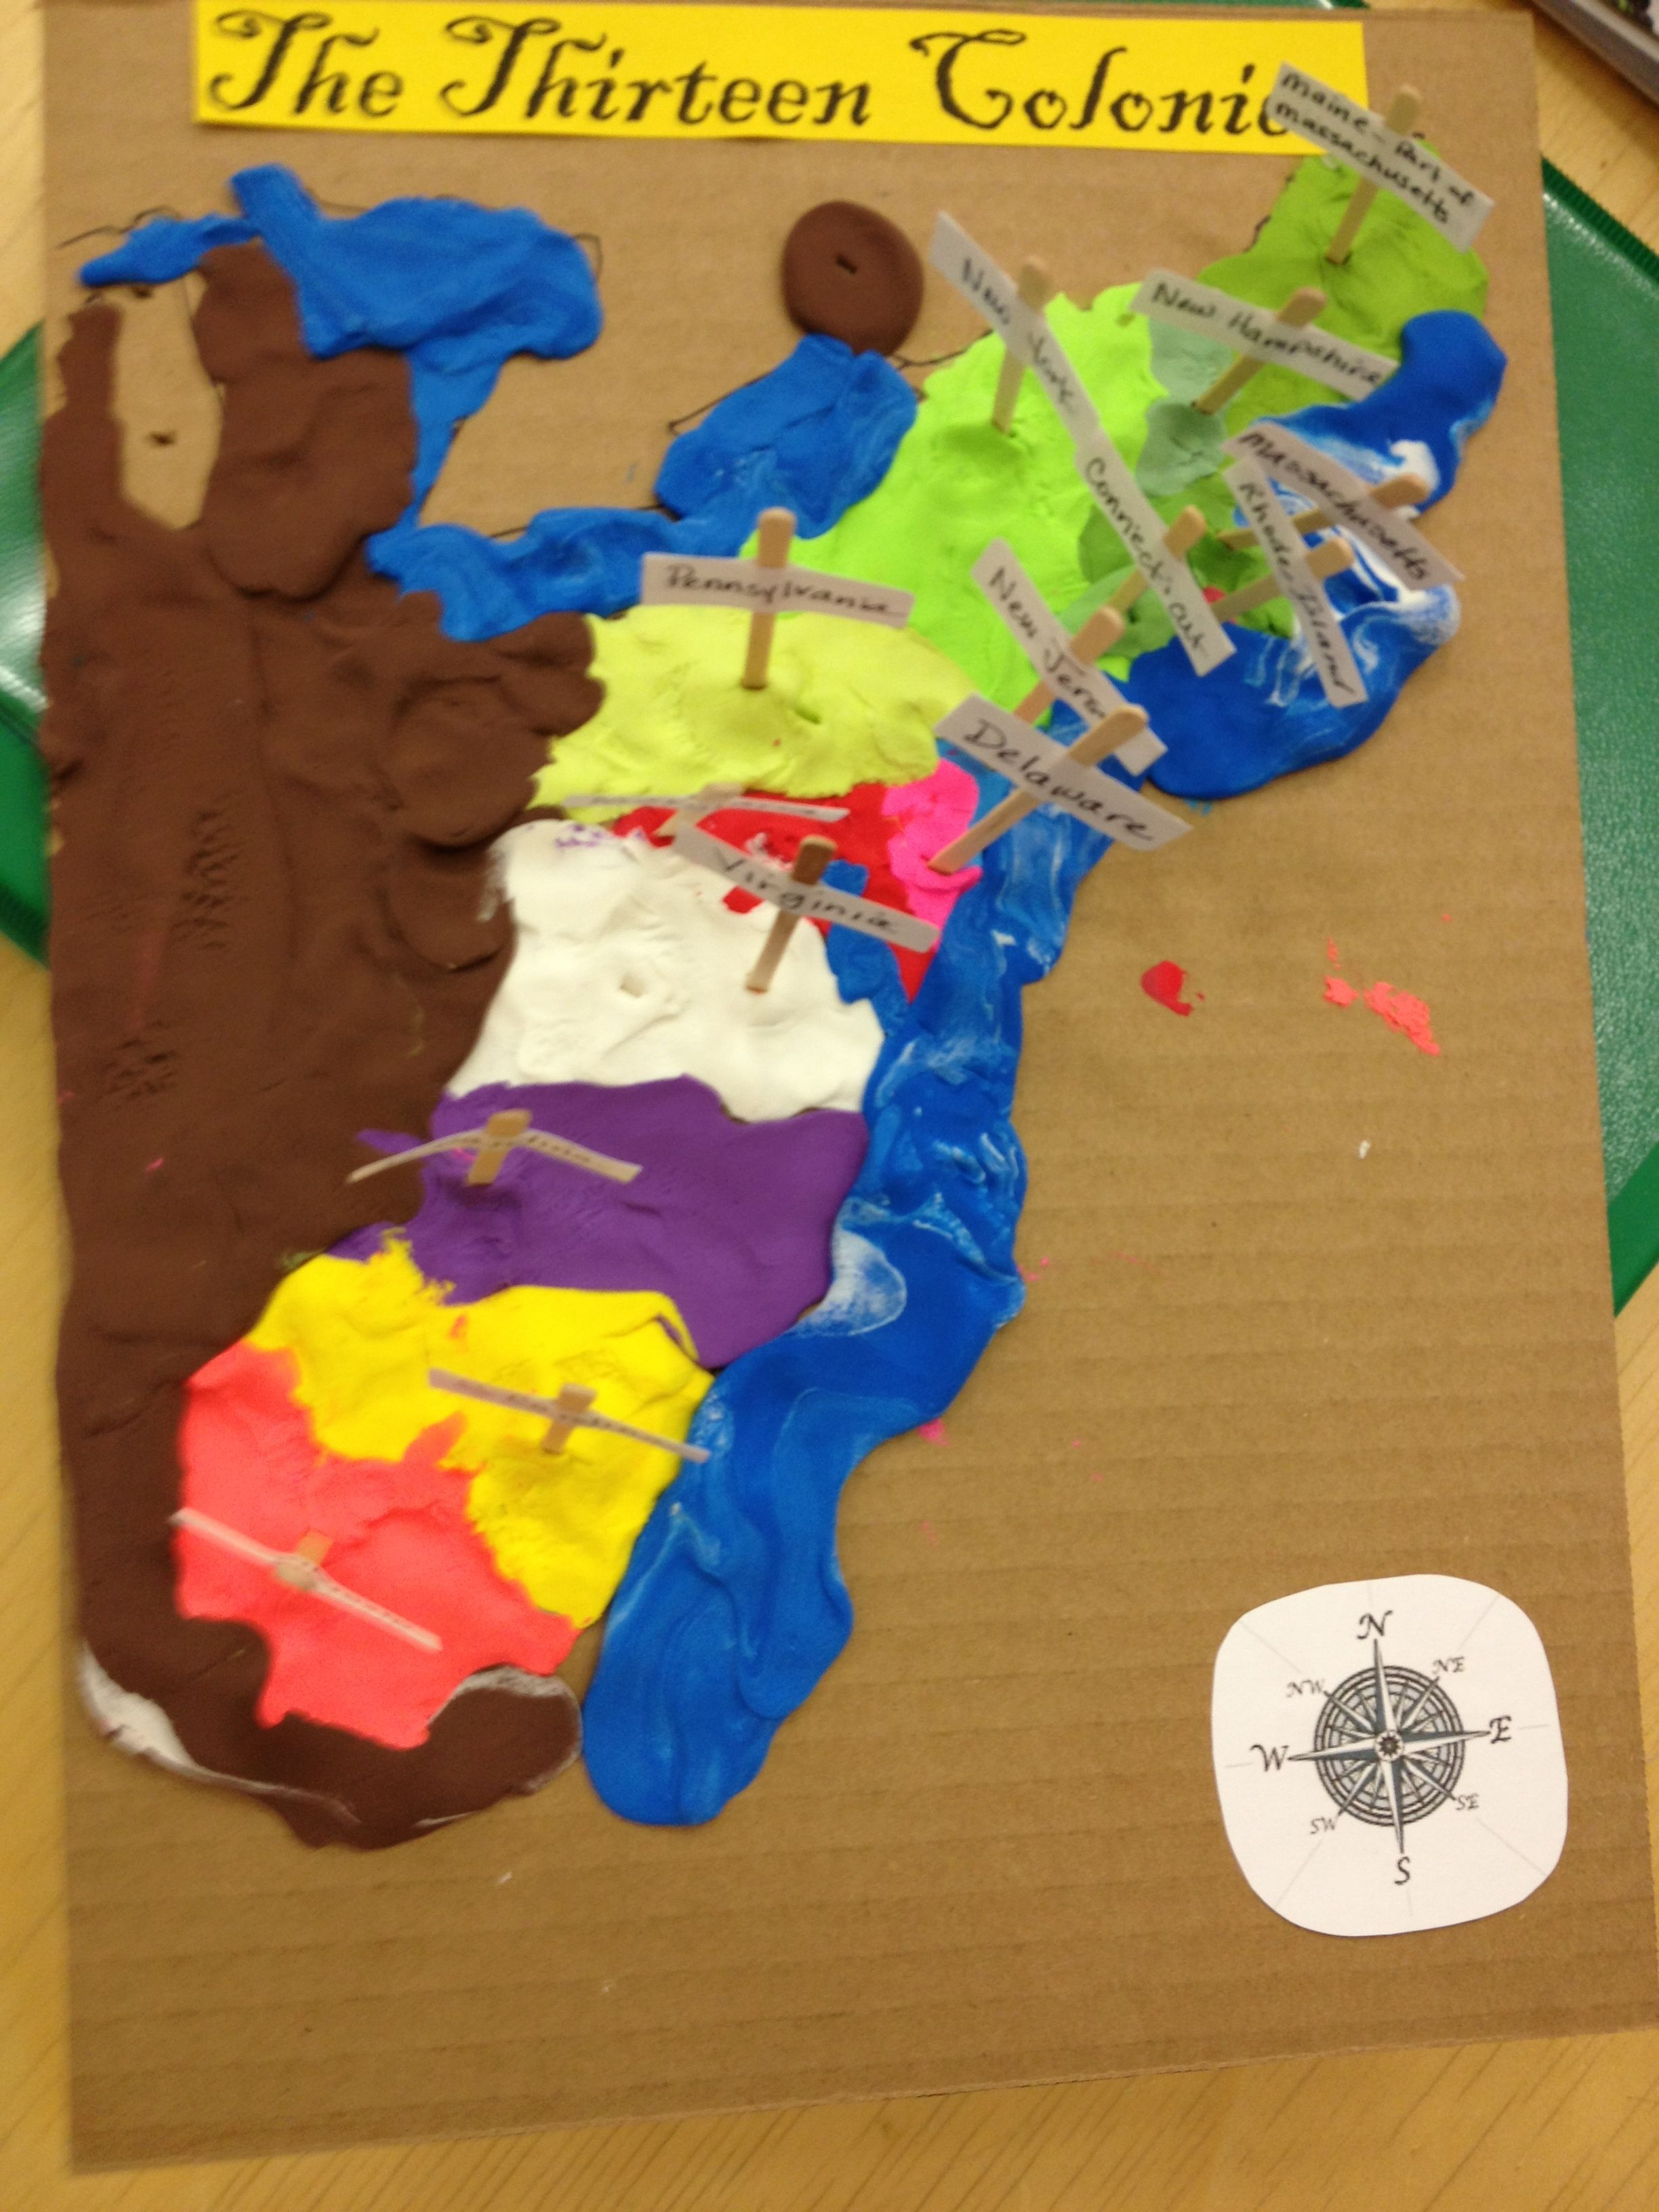 Great 13 Colonies Learning Project